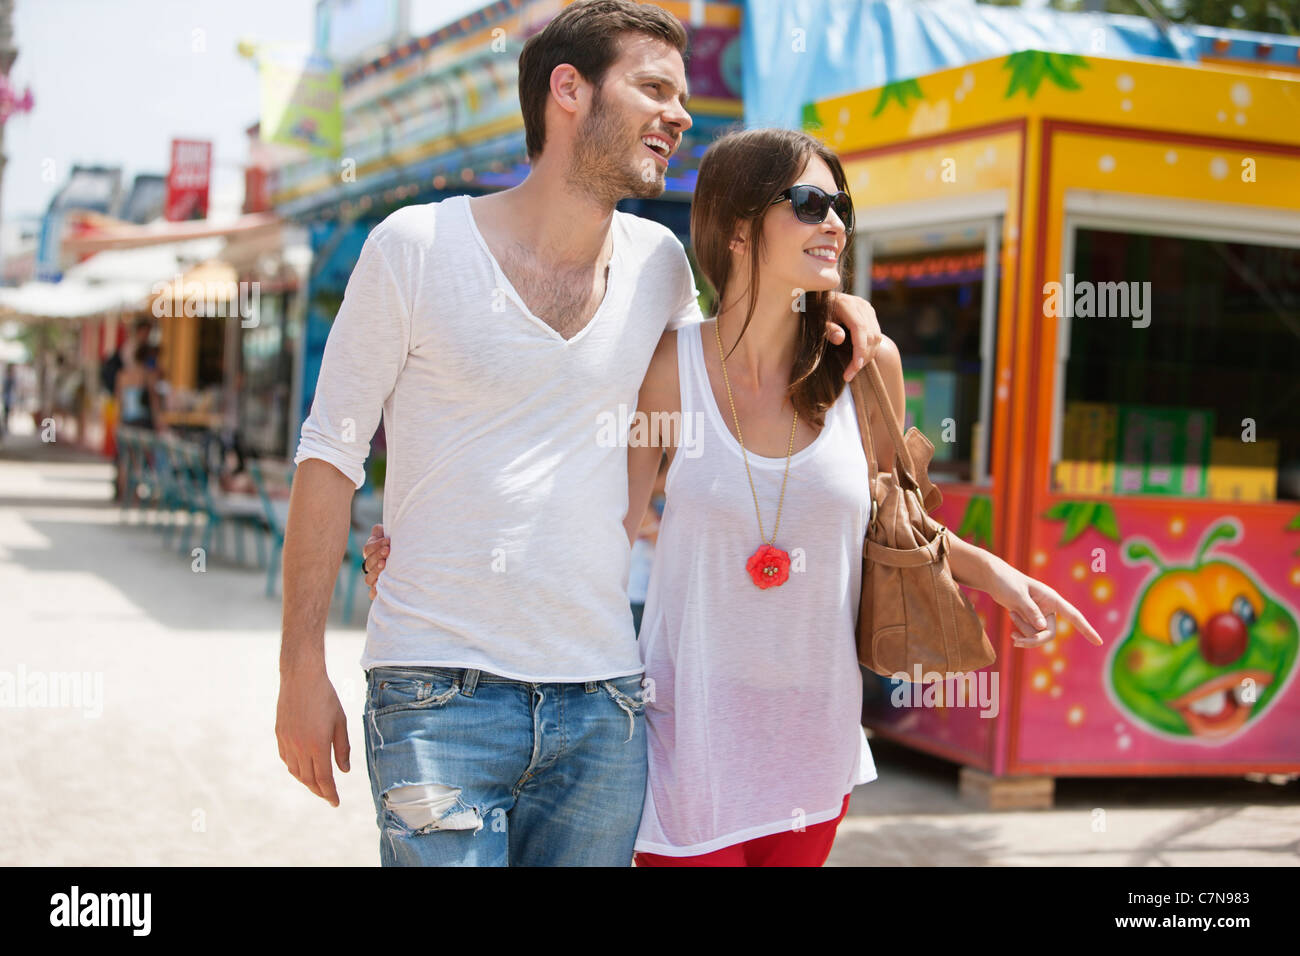 Couple walking in amusement park, Jardin des Tuileries, Paris, Ile-de-France, France - Stock Image